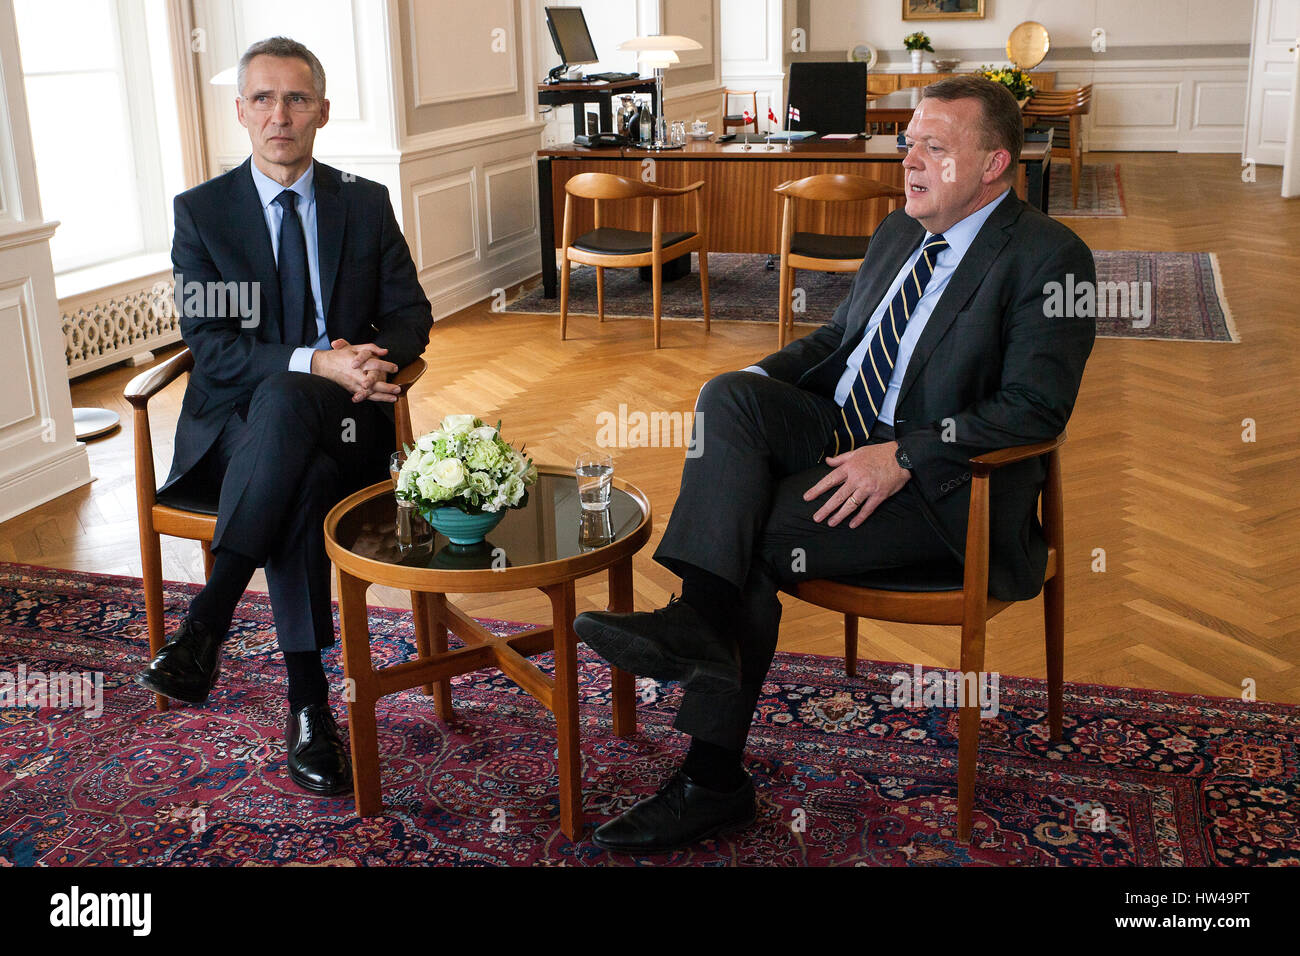 NATO Secretary General Jens Stoltenberg (L) meets Danish Prime Minister Lars Lokke Rasmussen at the PM's office - Stock Image